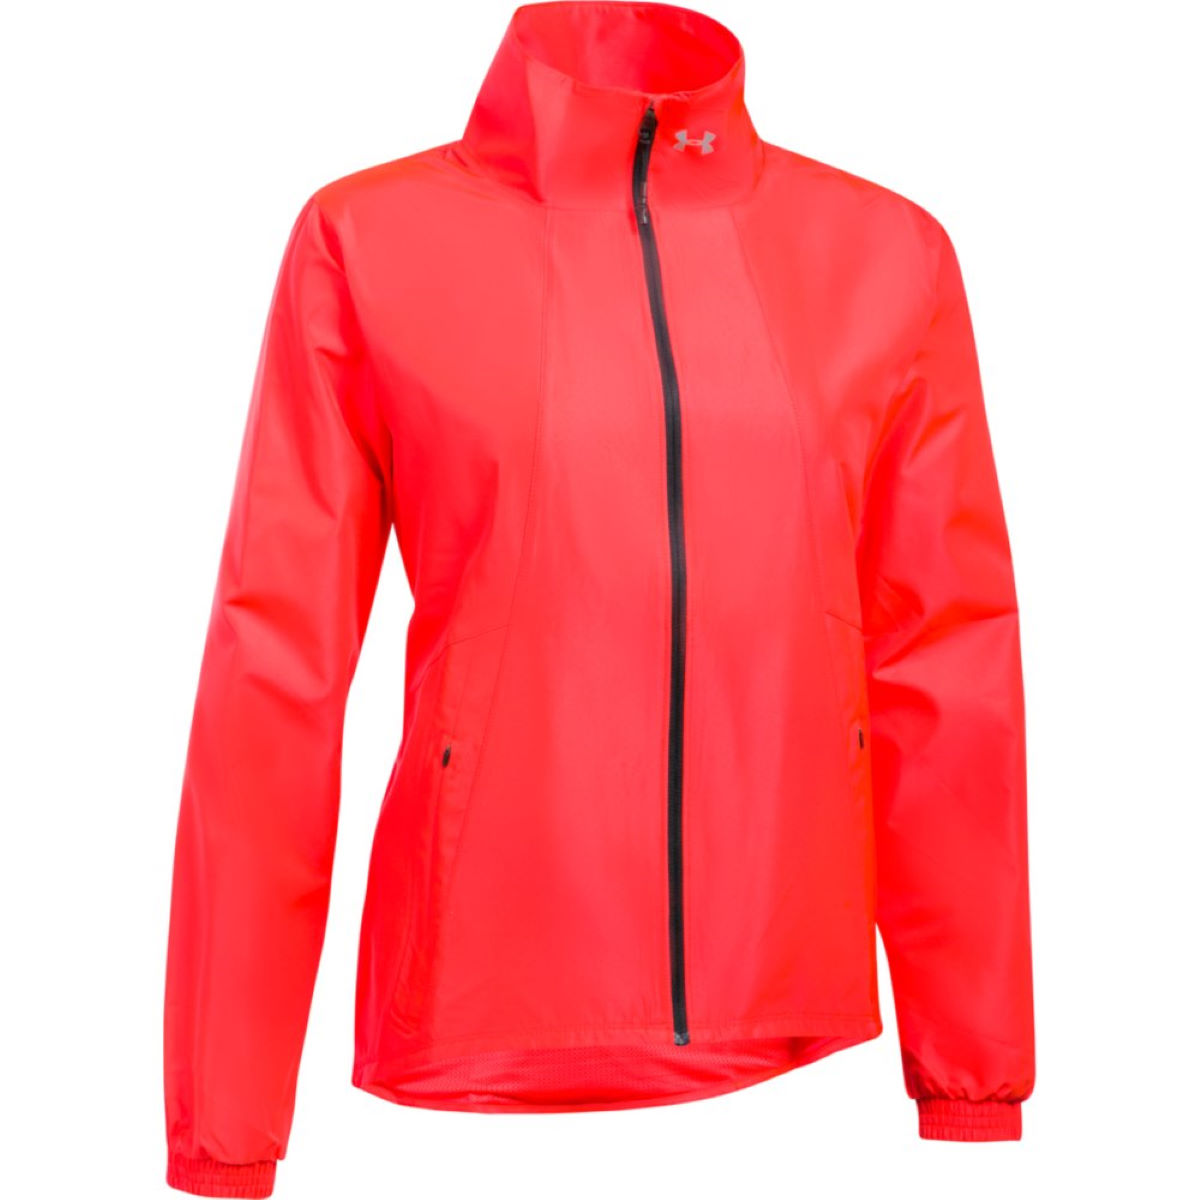 Under Armour Women's International Run Jacket - XS Marathon Red Vestes de running coupe-vent